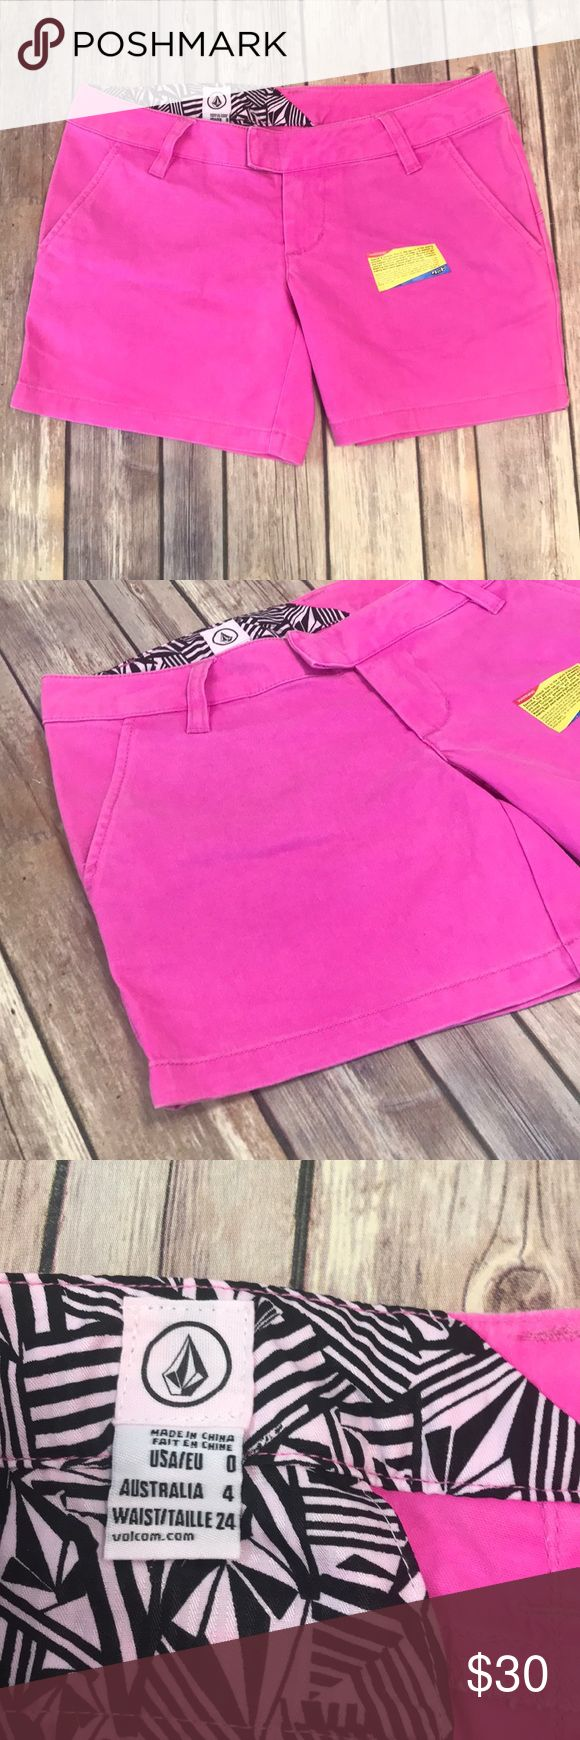 NWOT Volcom Shorts NWOT Volcom shorts size Size 0 Or size 1 available. Volcom Shorts